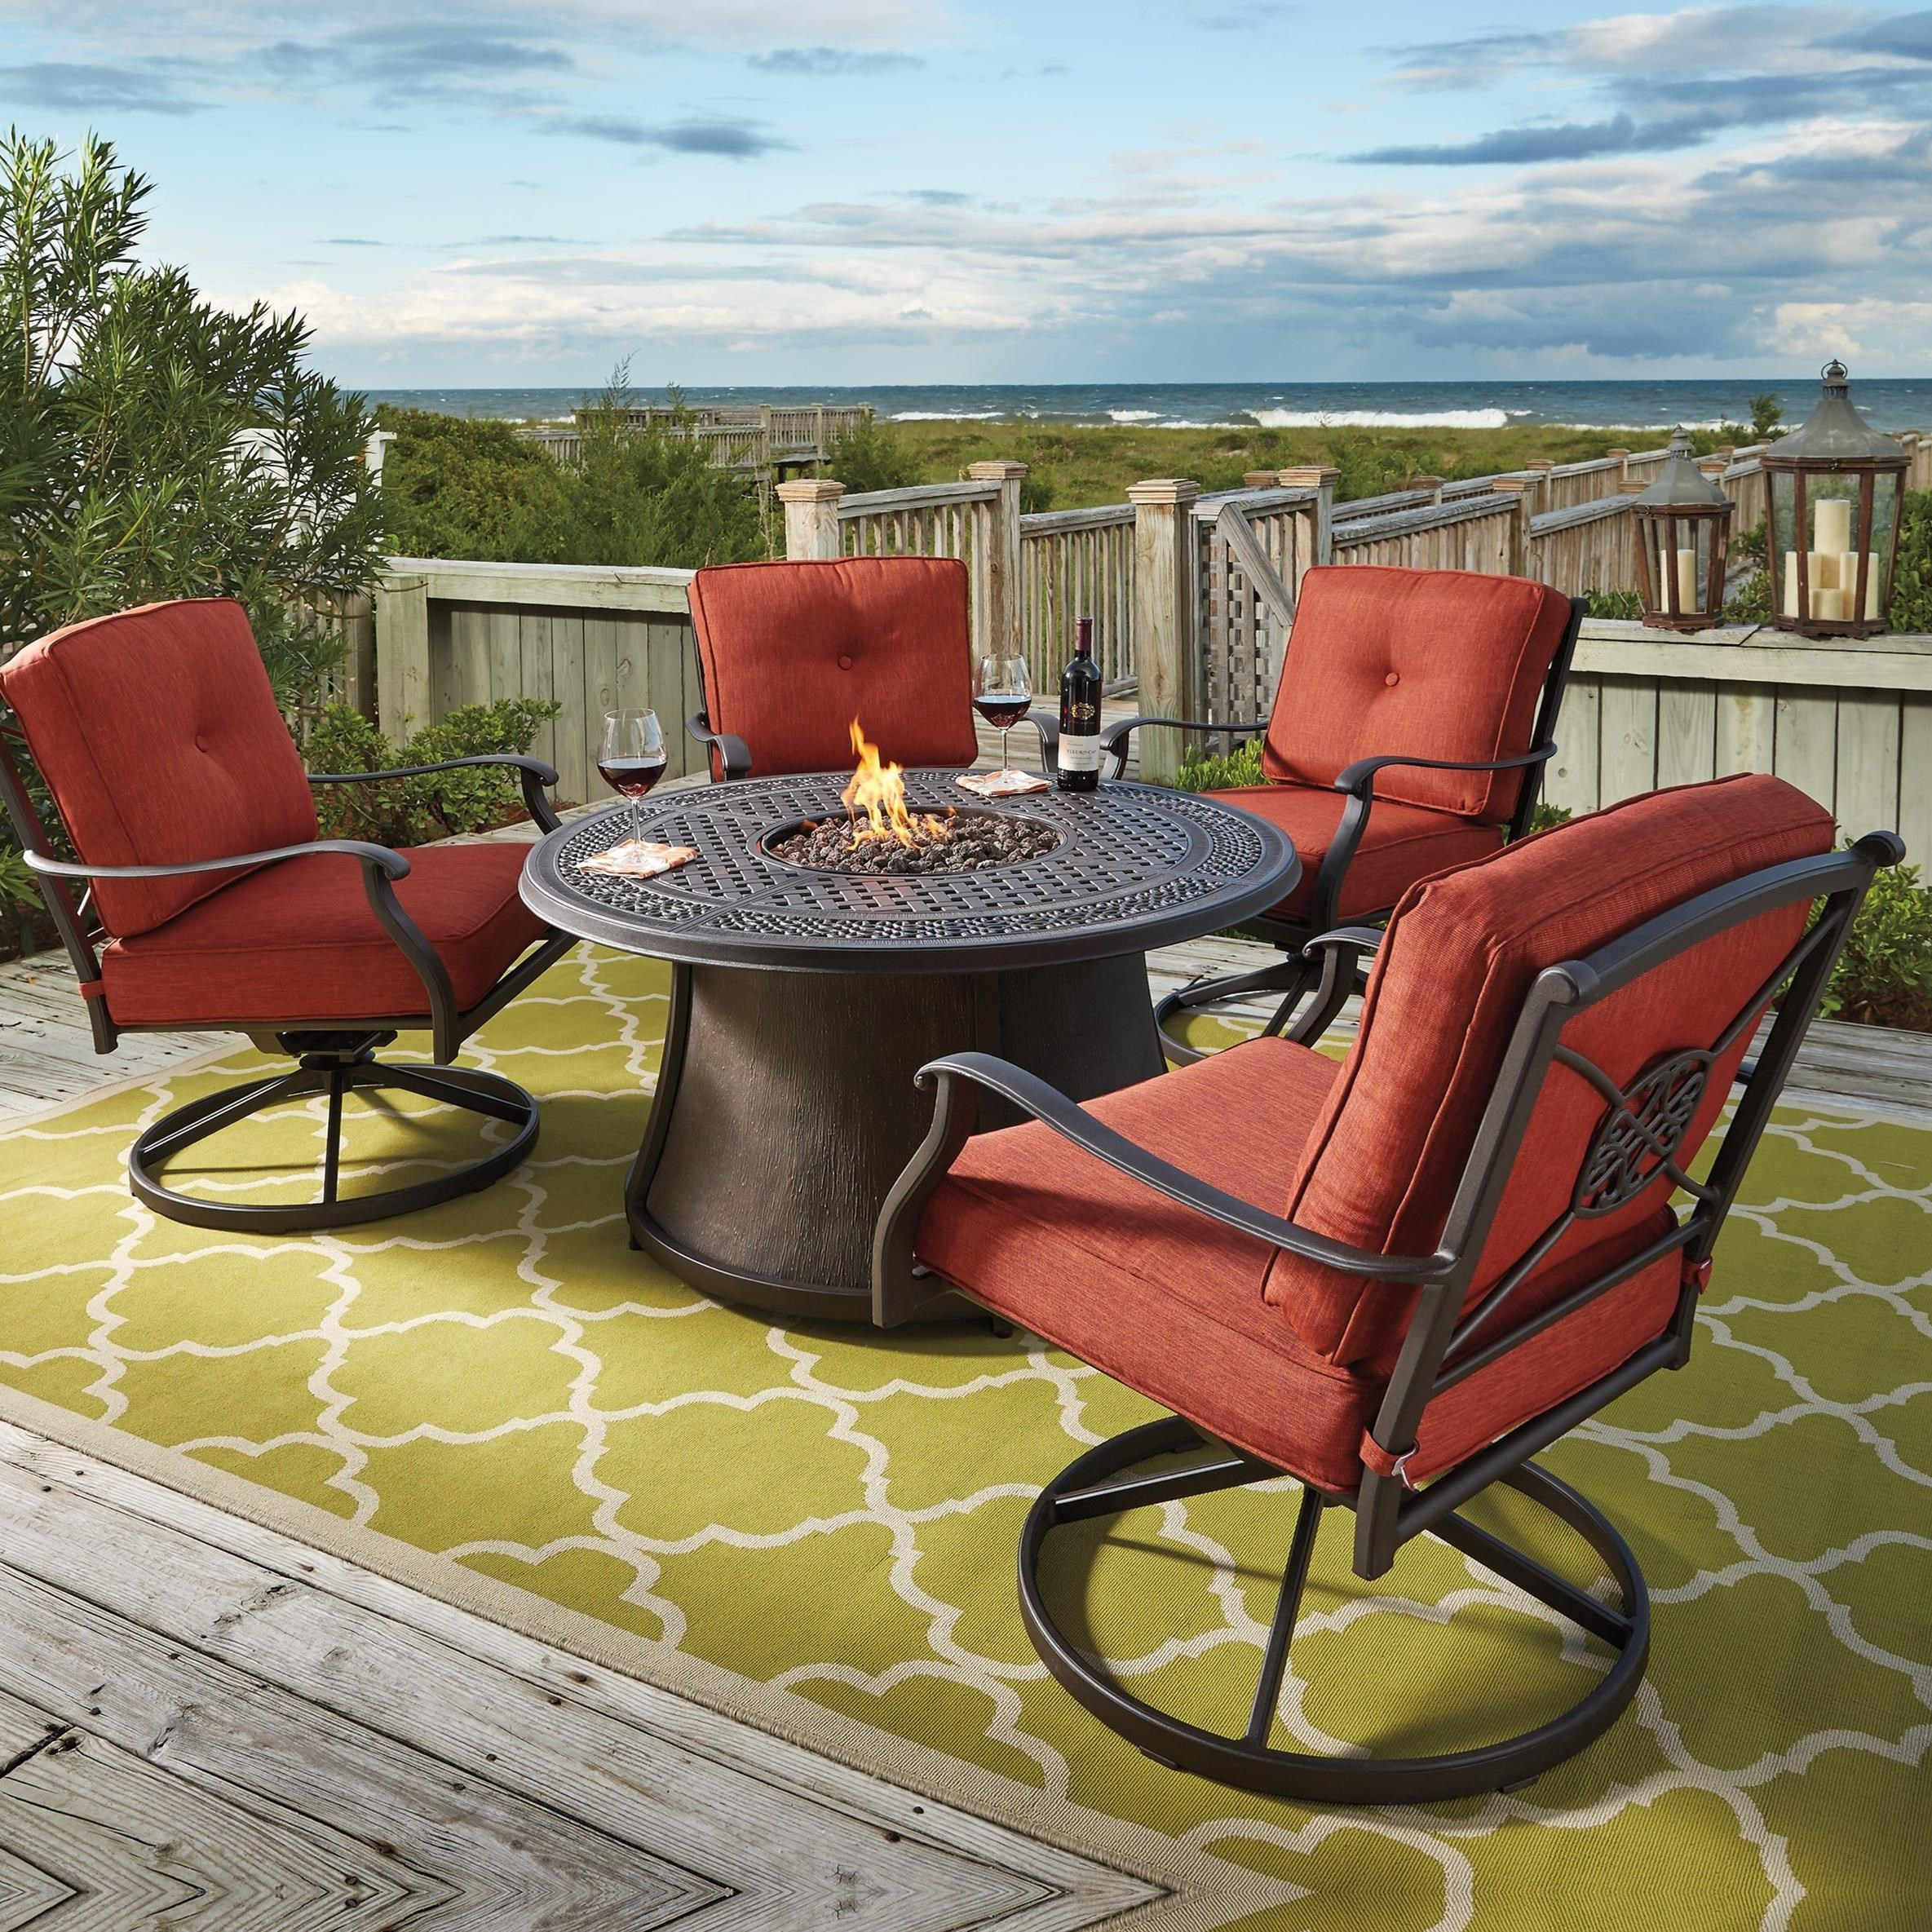 Burnella 5-Piece Outdoor Fire Pit Set by Signature Design by Ashley at Lapeer Furniture & Mattress Center